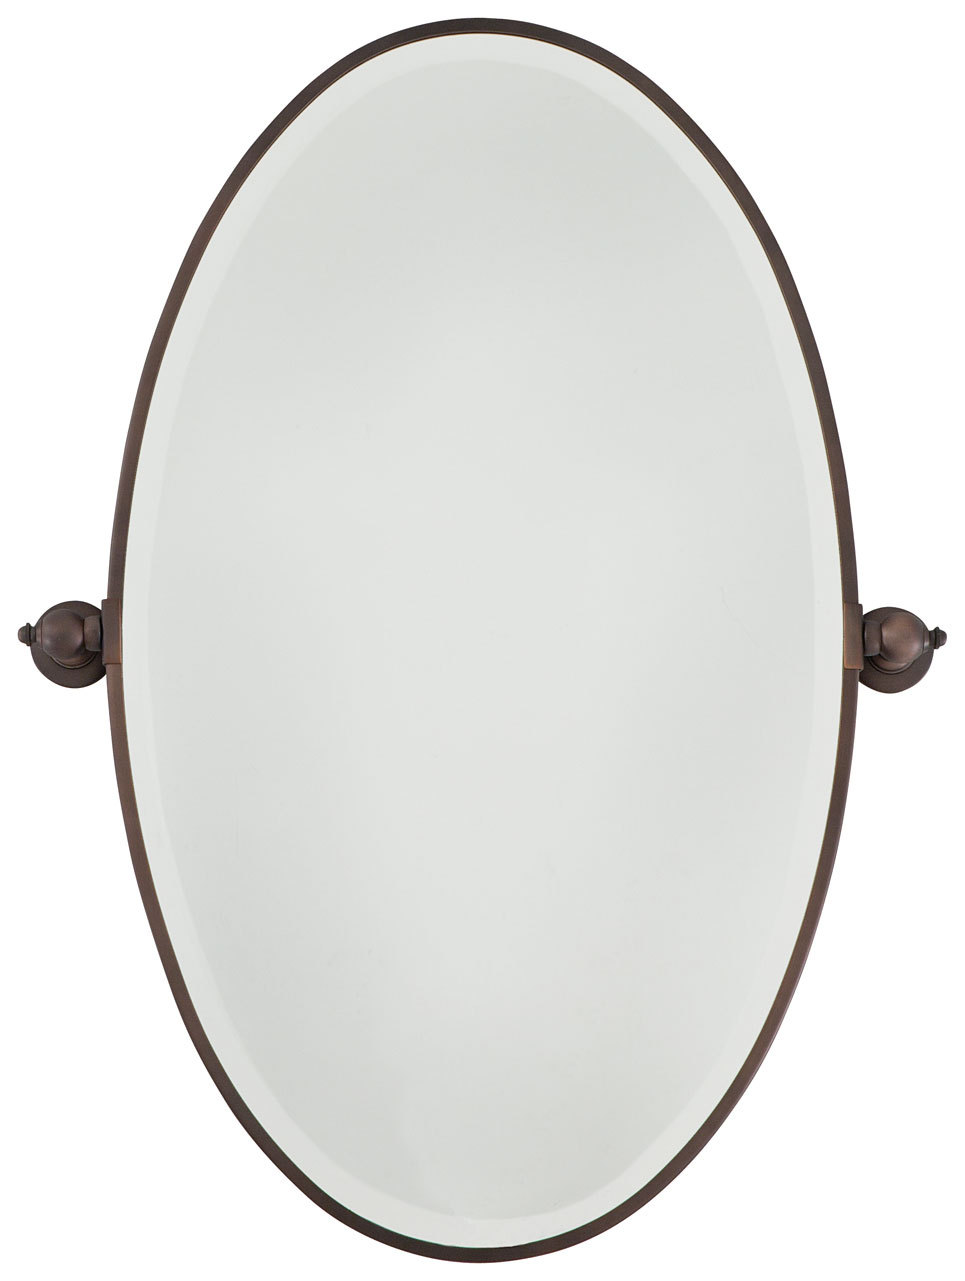 Xl Oval Mirror - Beveled